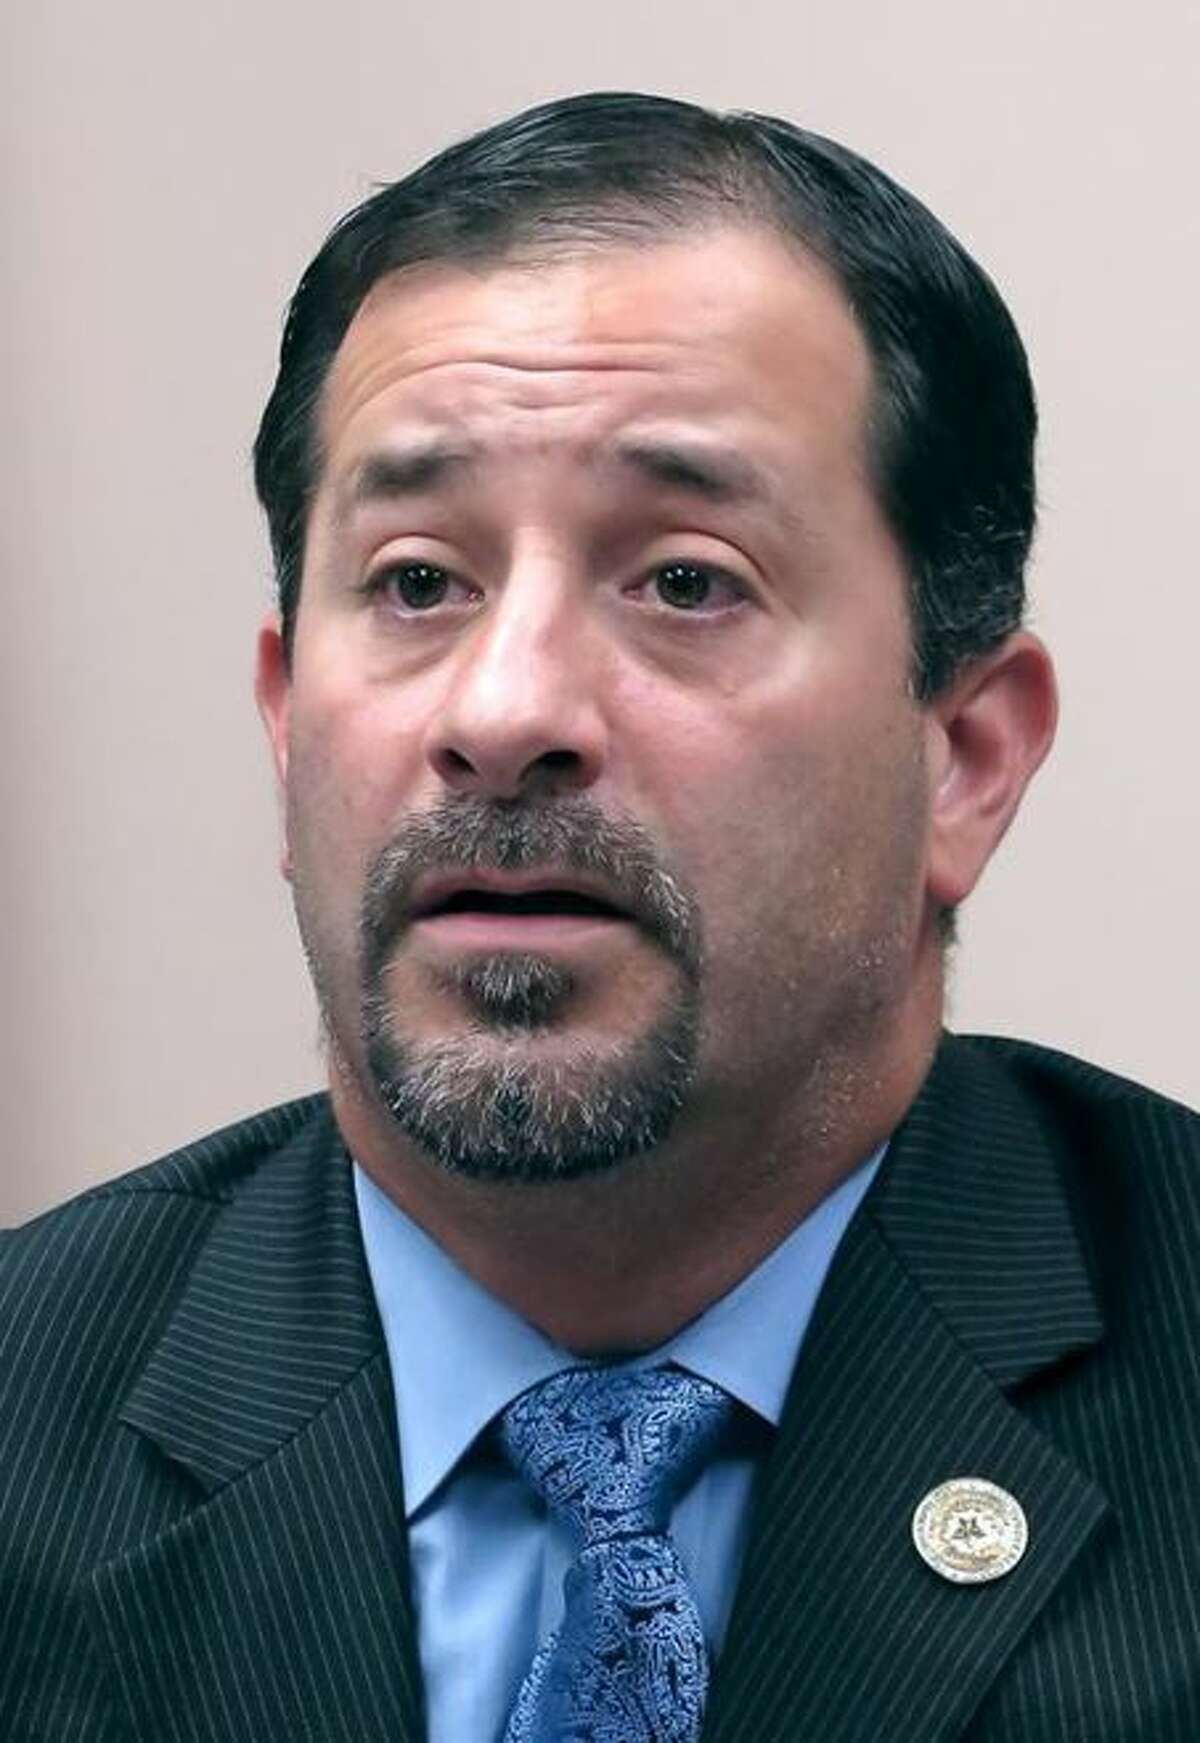 County Attorney Marco Montemayor's temporary restraining order was filed and granted on Friday